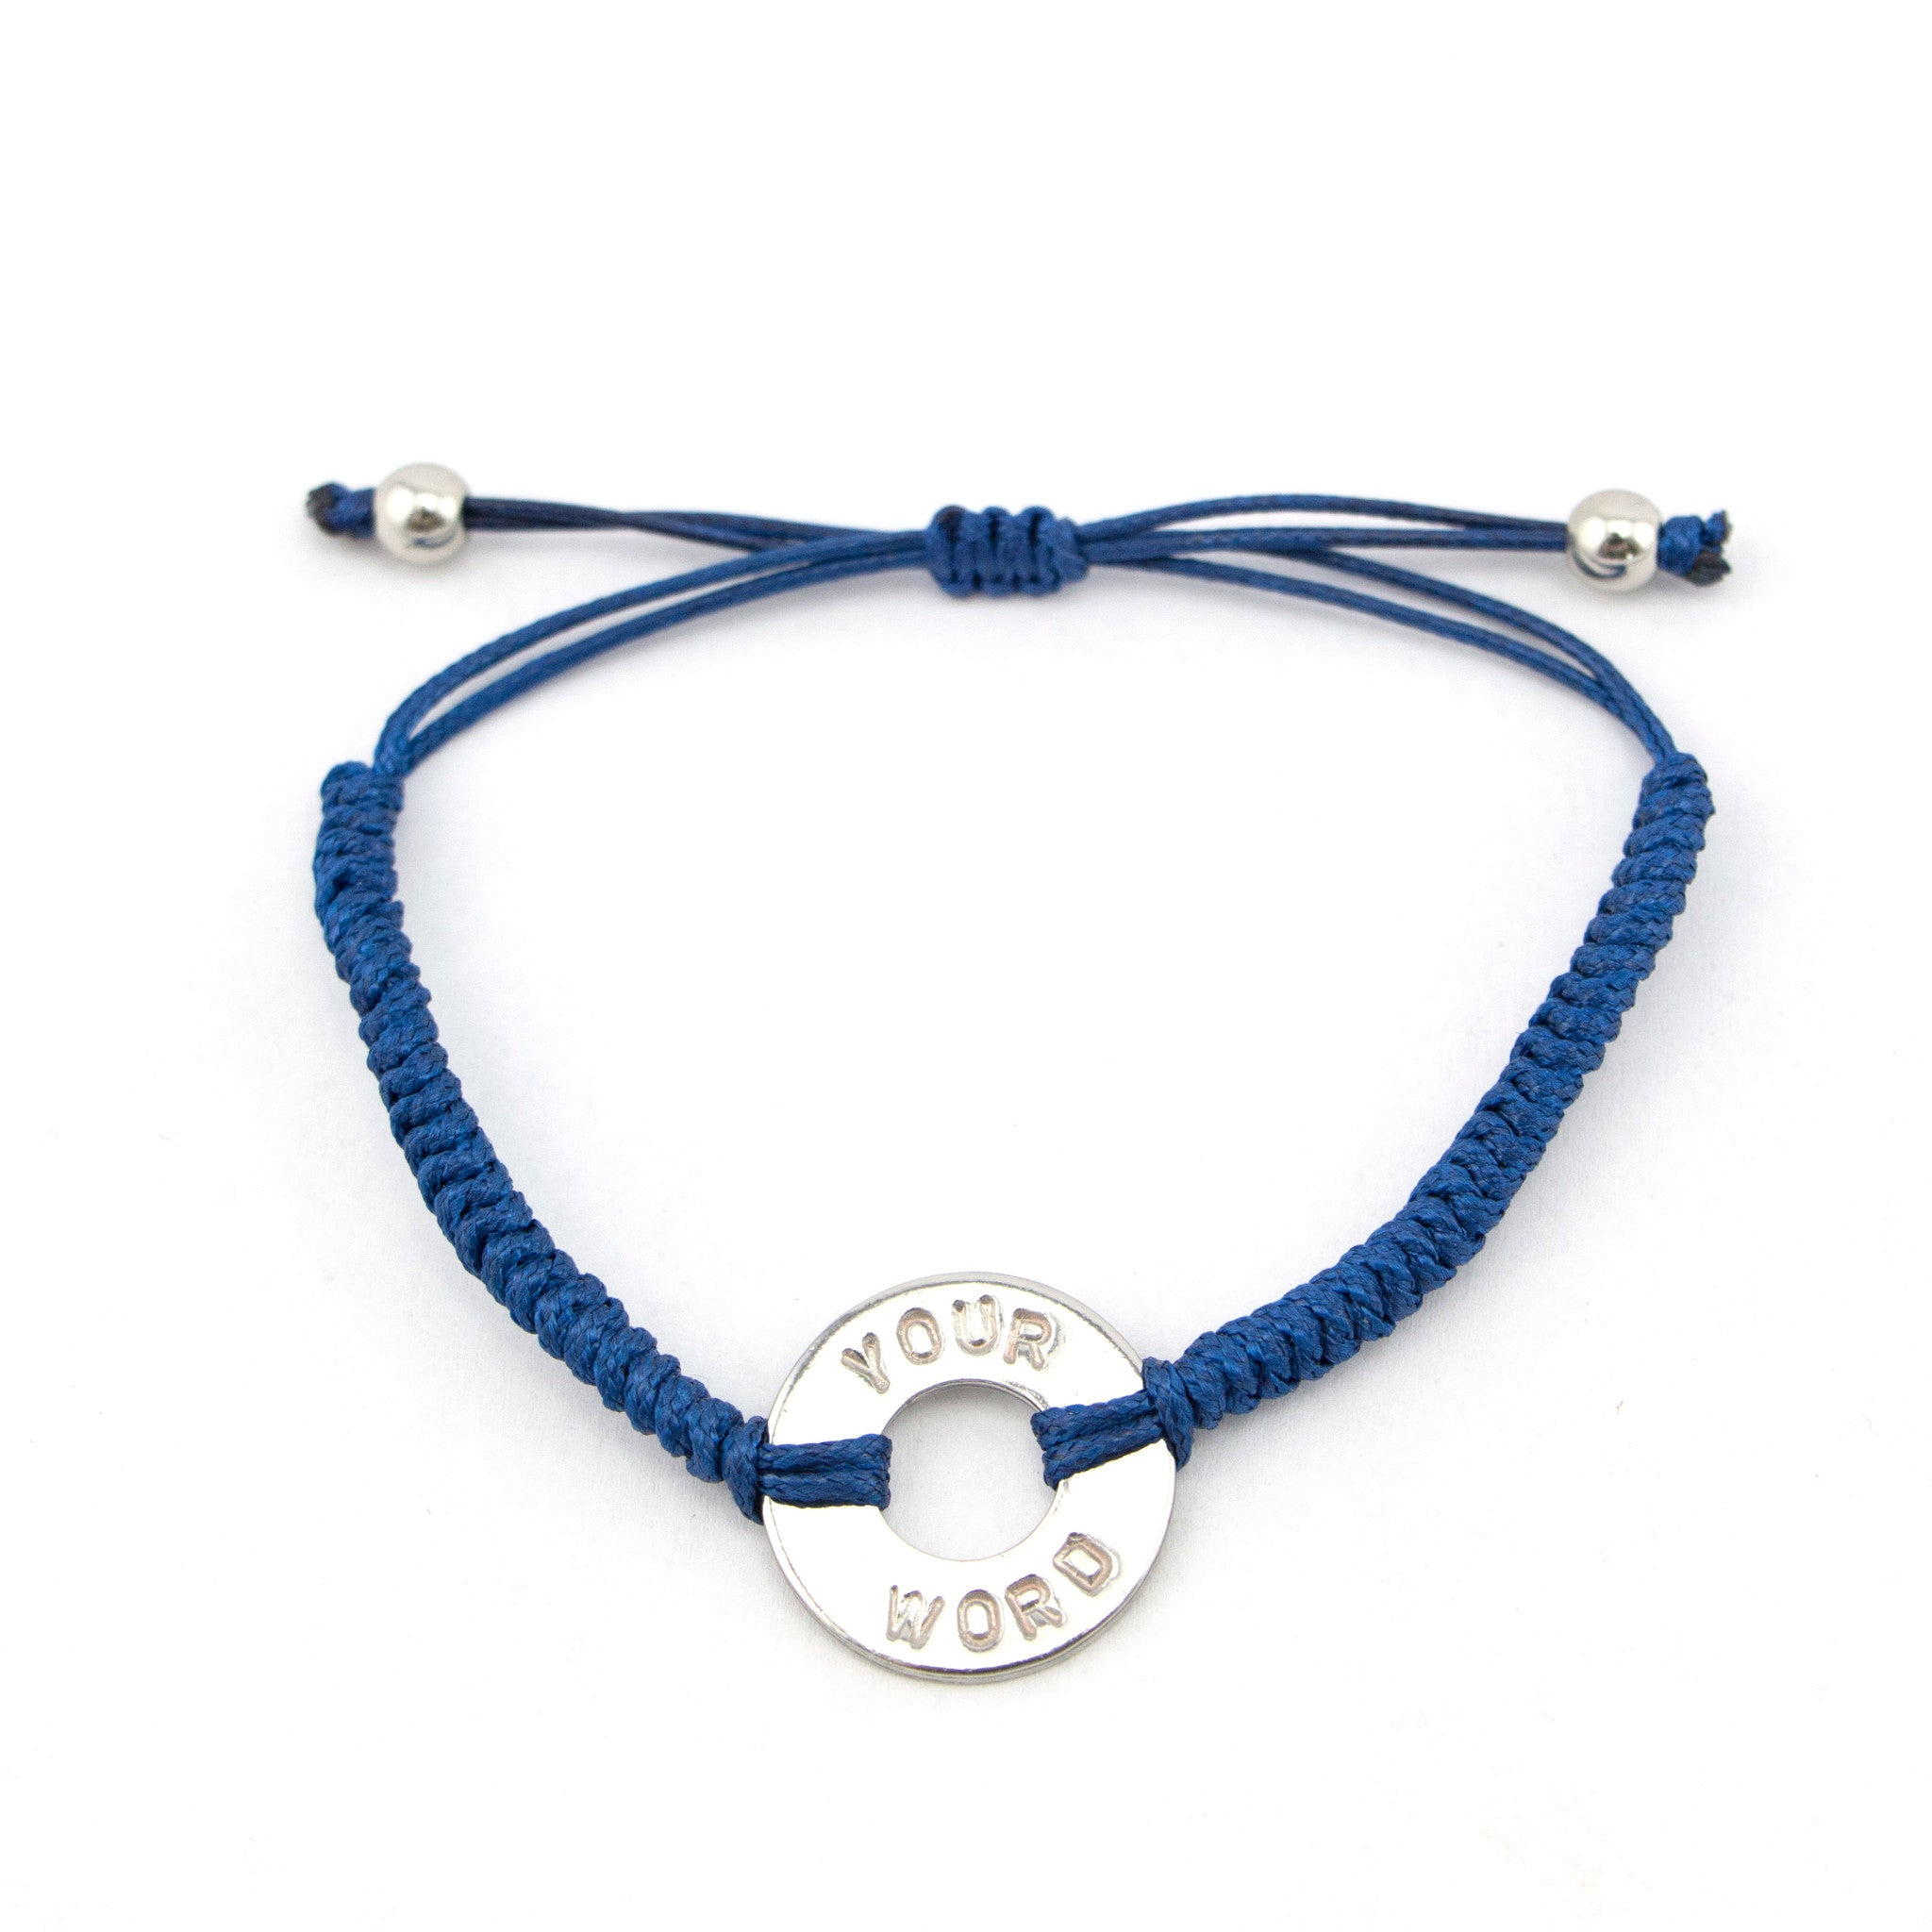 MyIntent Custom Round Bracelet Silver Token with Blue String and stainless steel beads